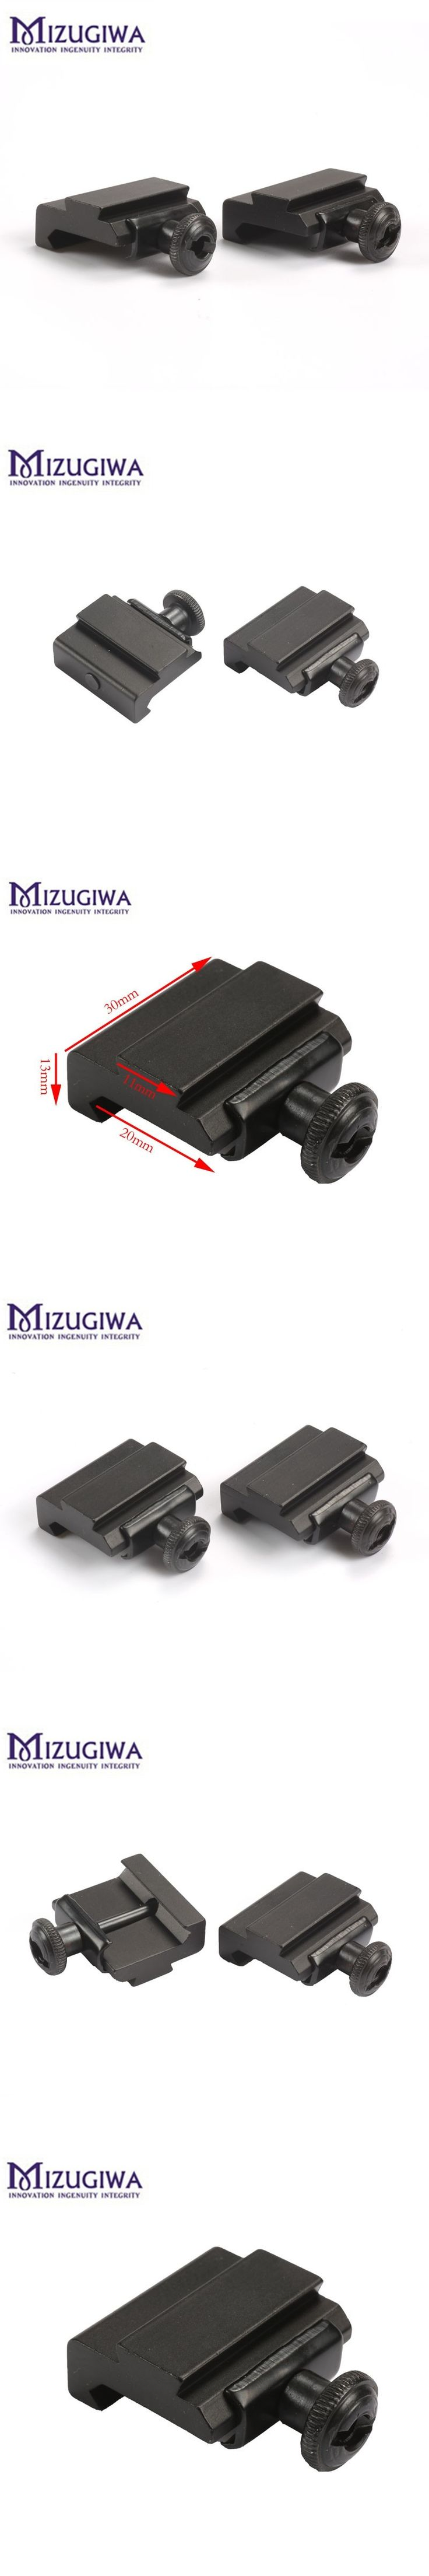 1PC  Hunting Scope Mount 20mm to 11mm Weaver Picatinny To Dovetail Rail Adapter Base Mount Caza Long 30mm